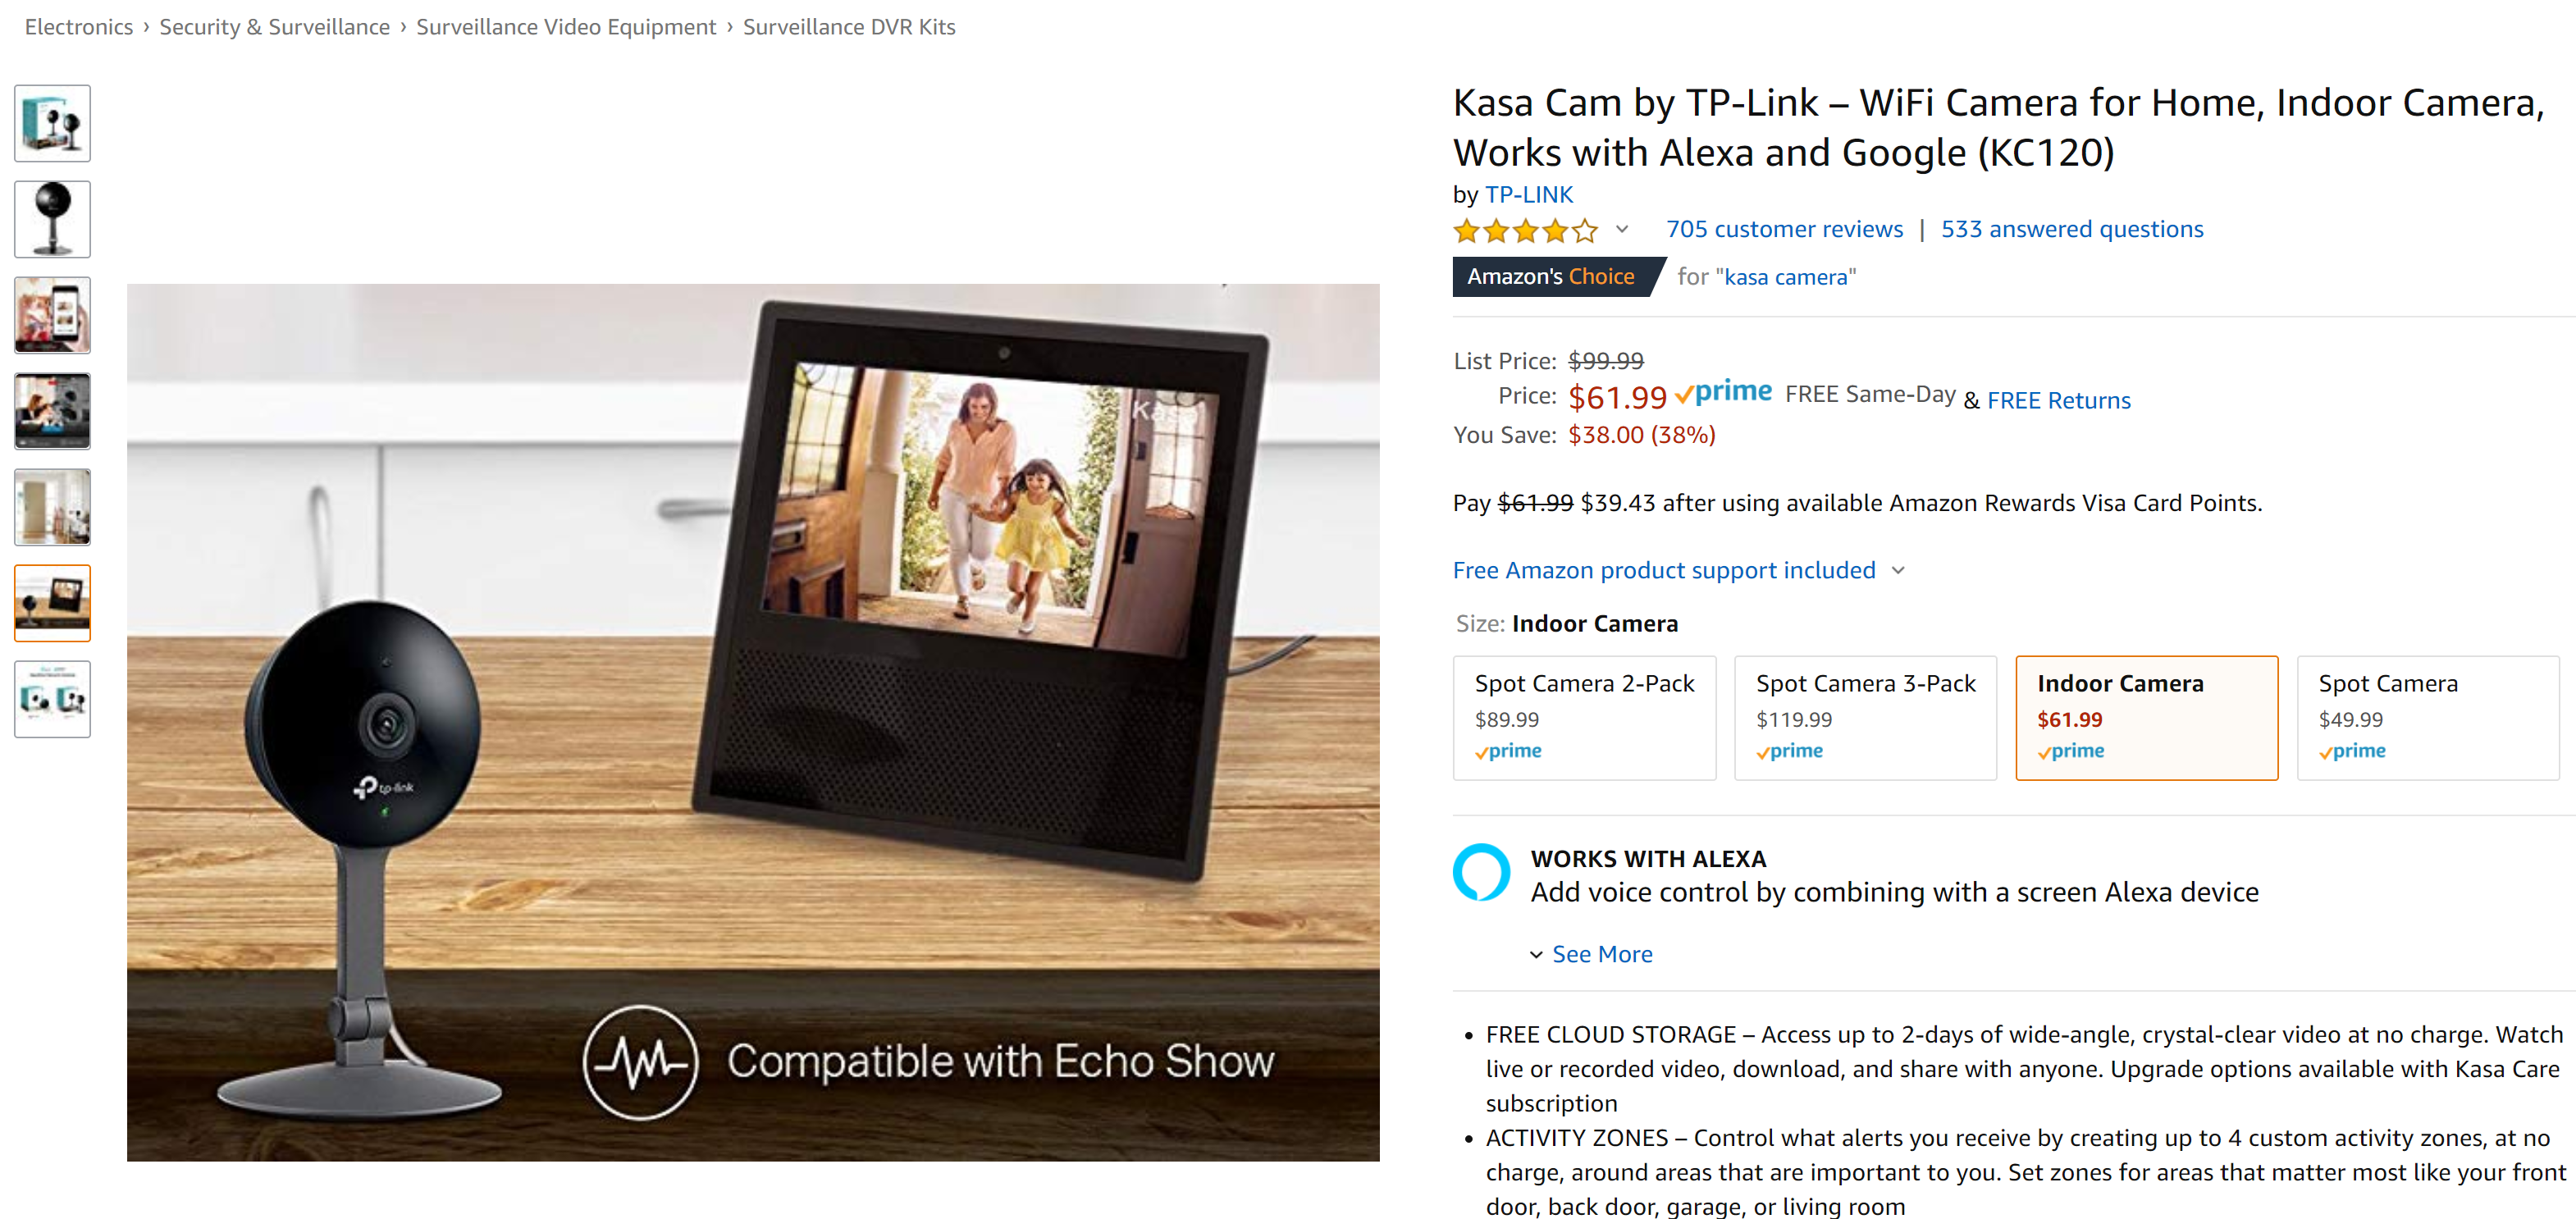 Get a Kasa Cam from TP-Link for just $62 ($38 off) right now